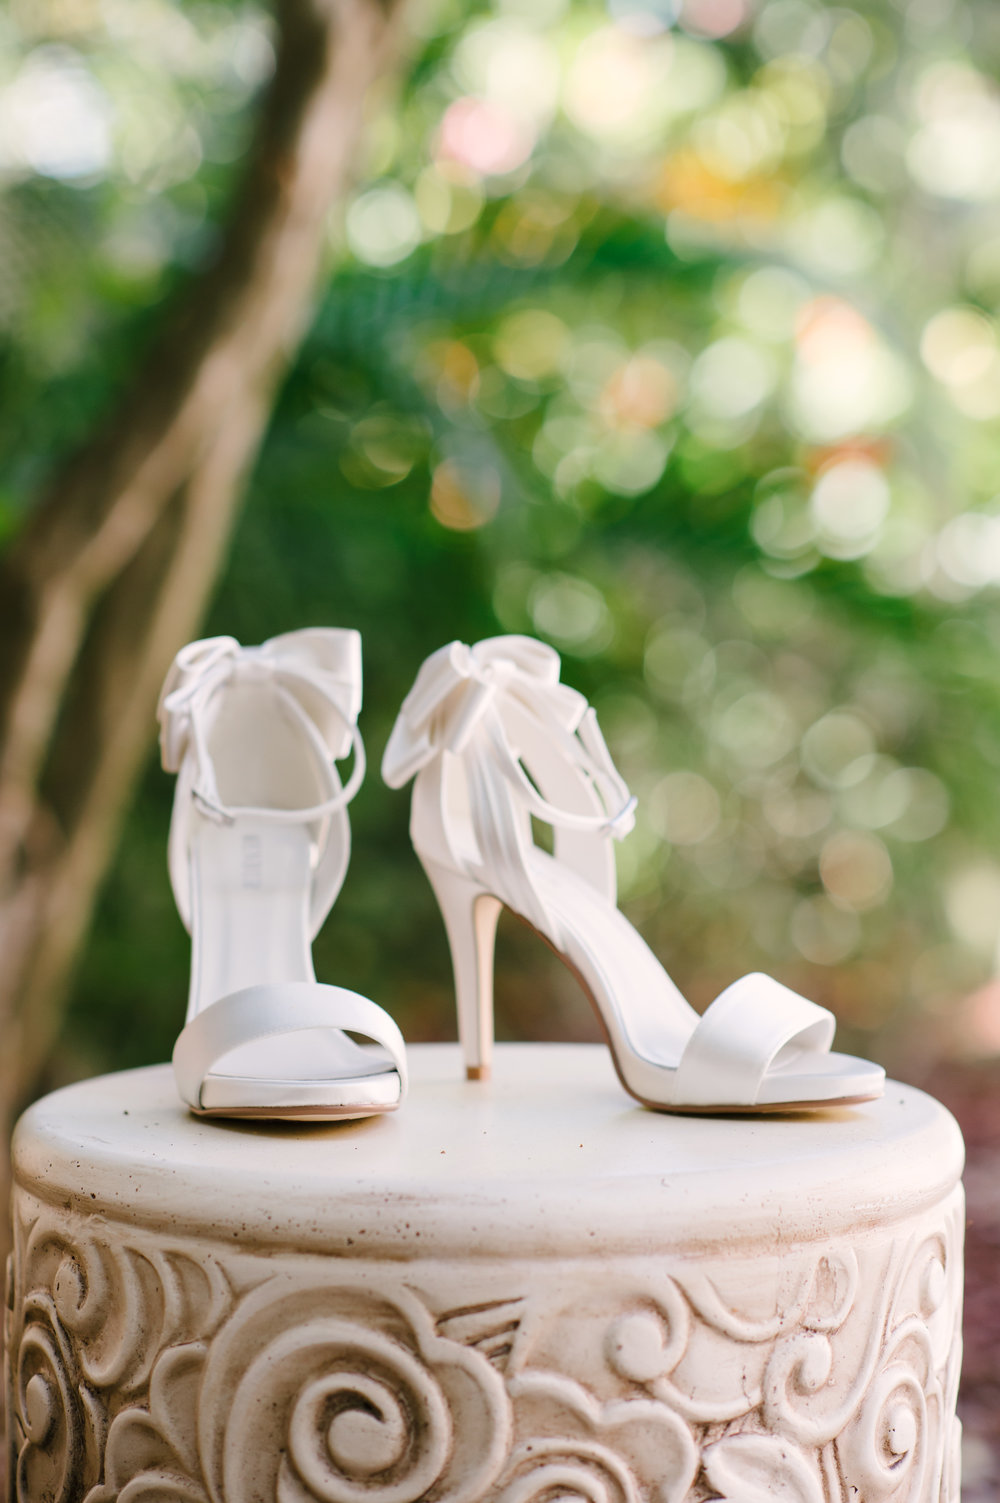 The bride's ivory heels with elegant bow details on the backs.